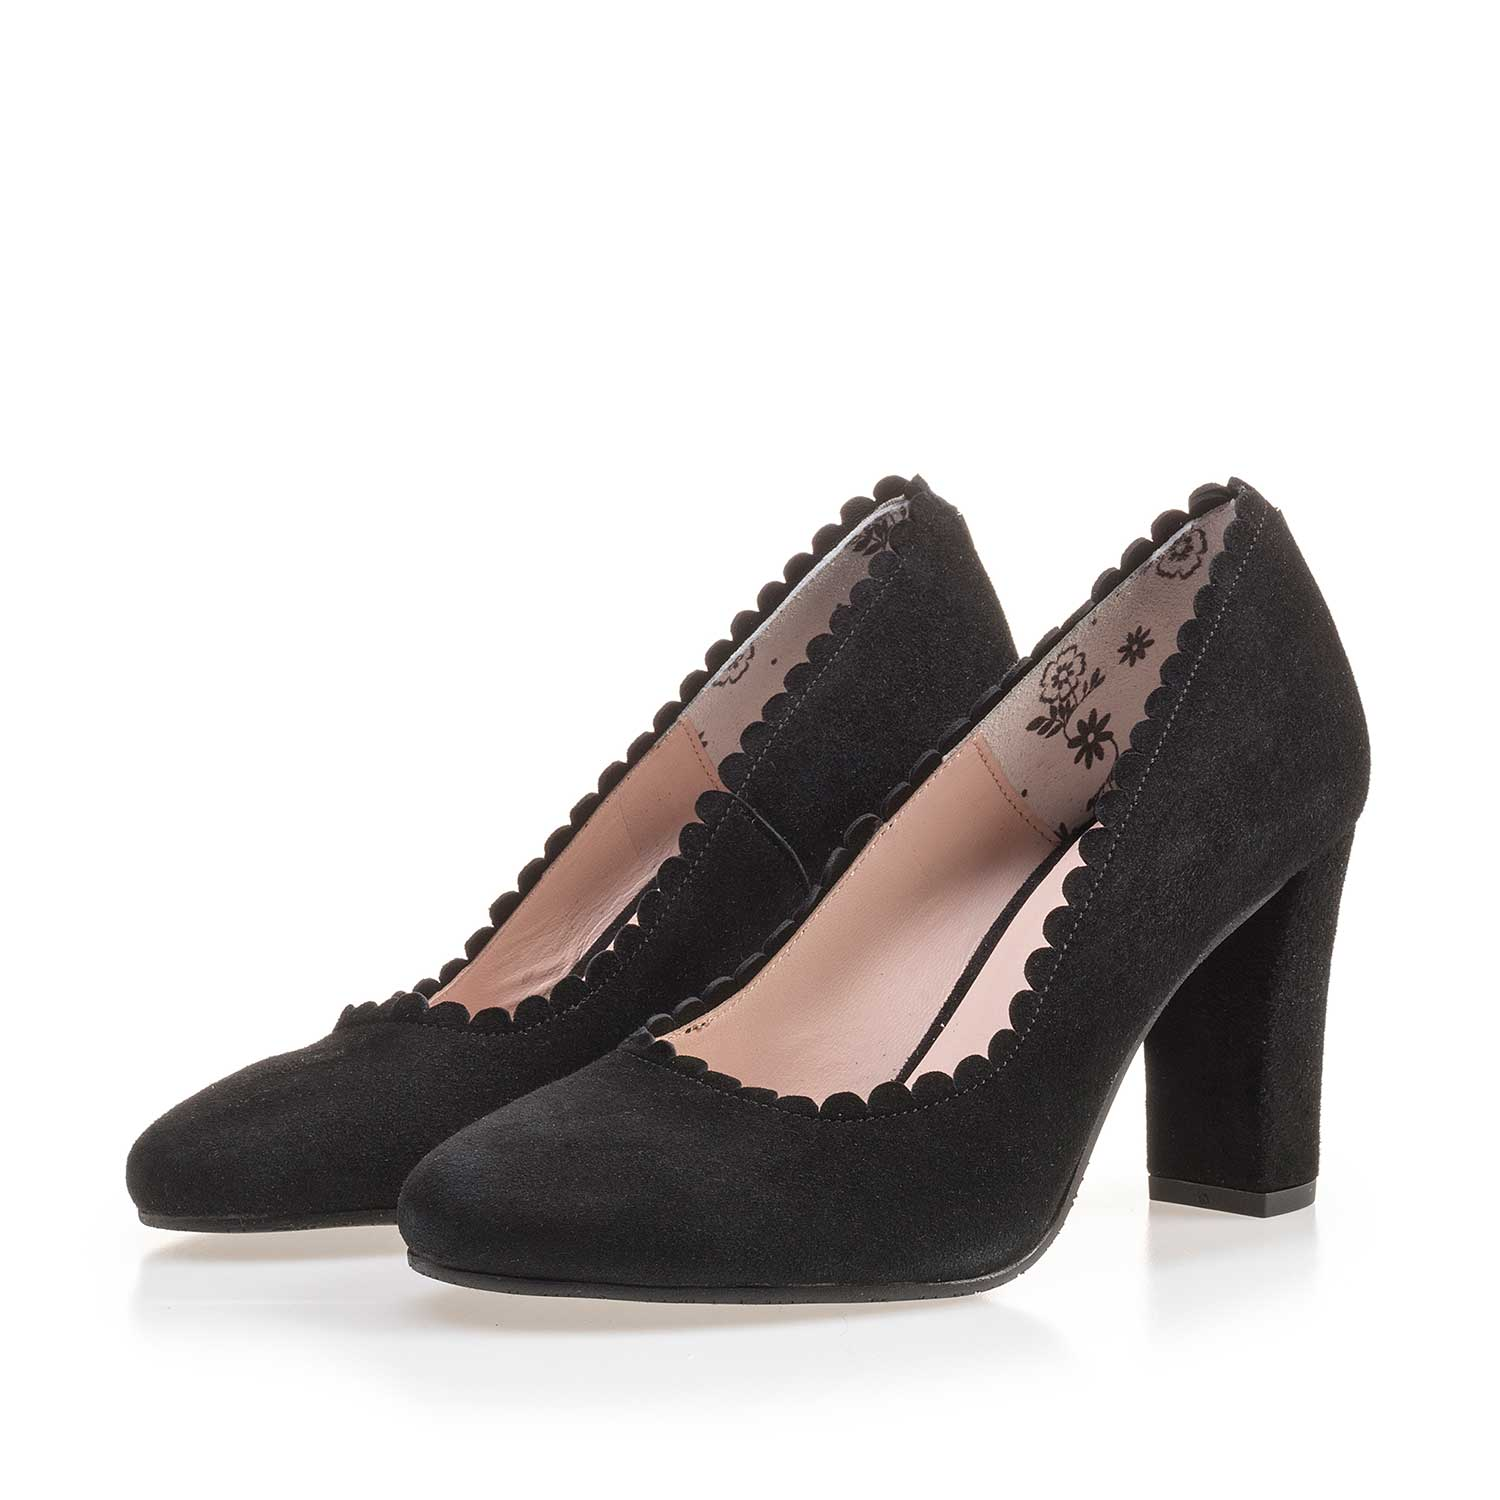 85249/00 - Black calf's suede leather pumps